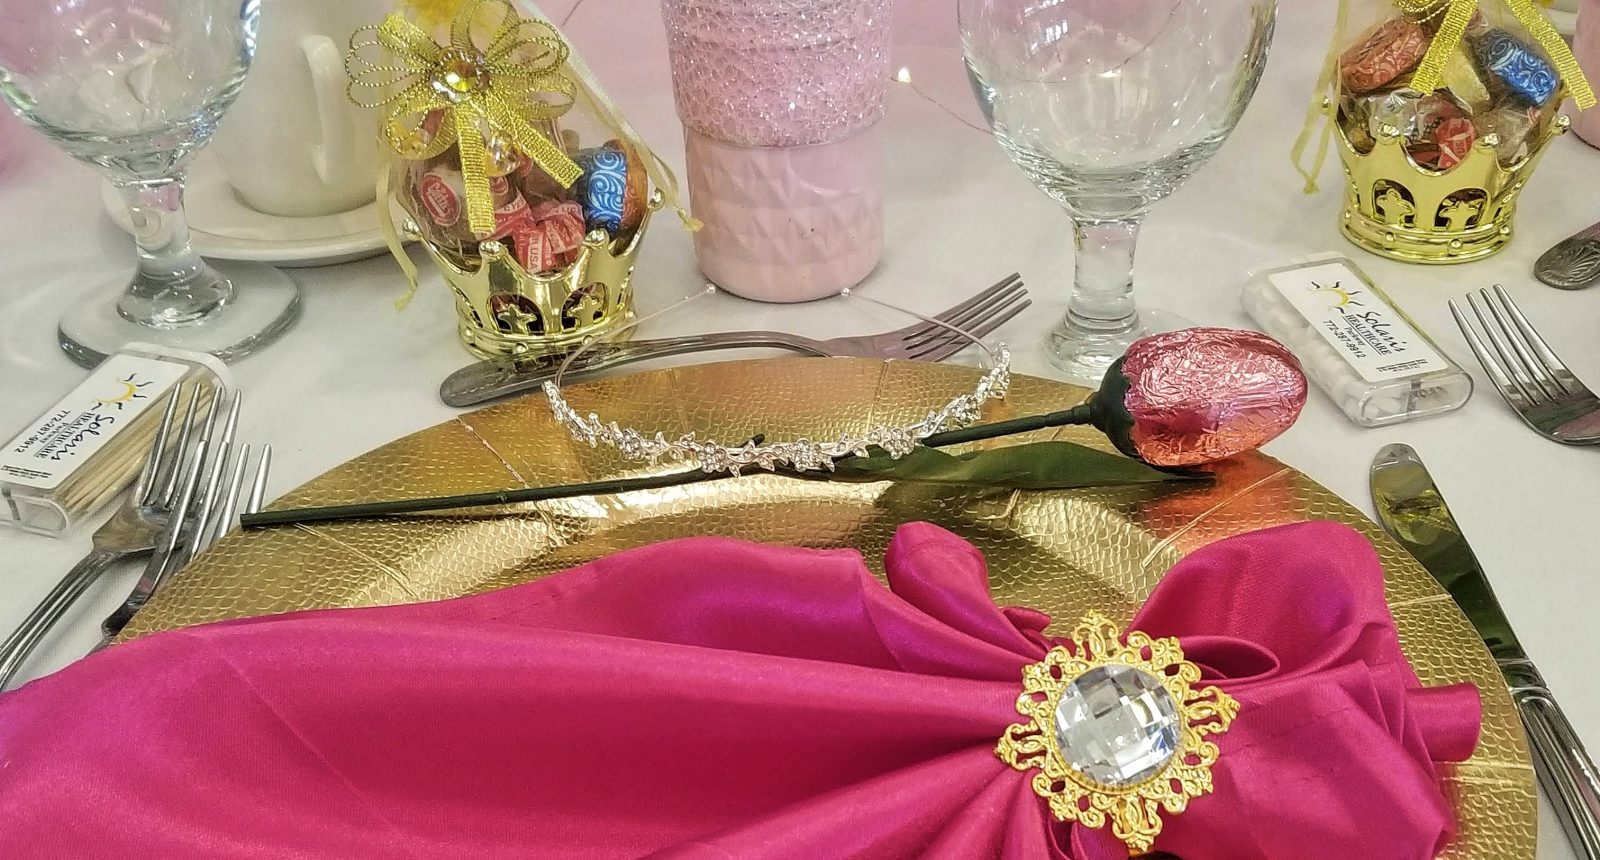 Table setting with pink napkin over gold plate